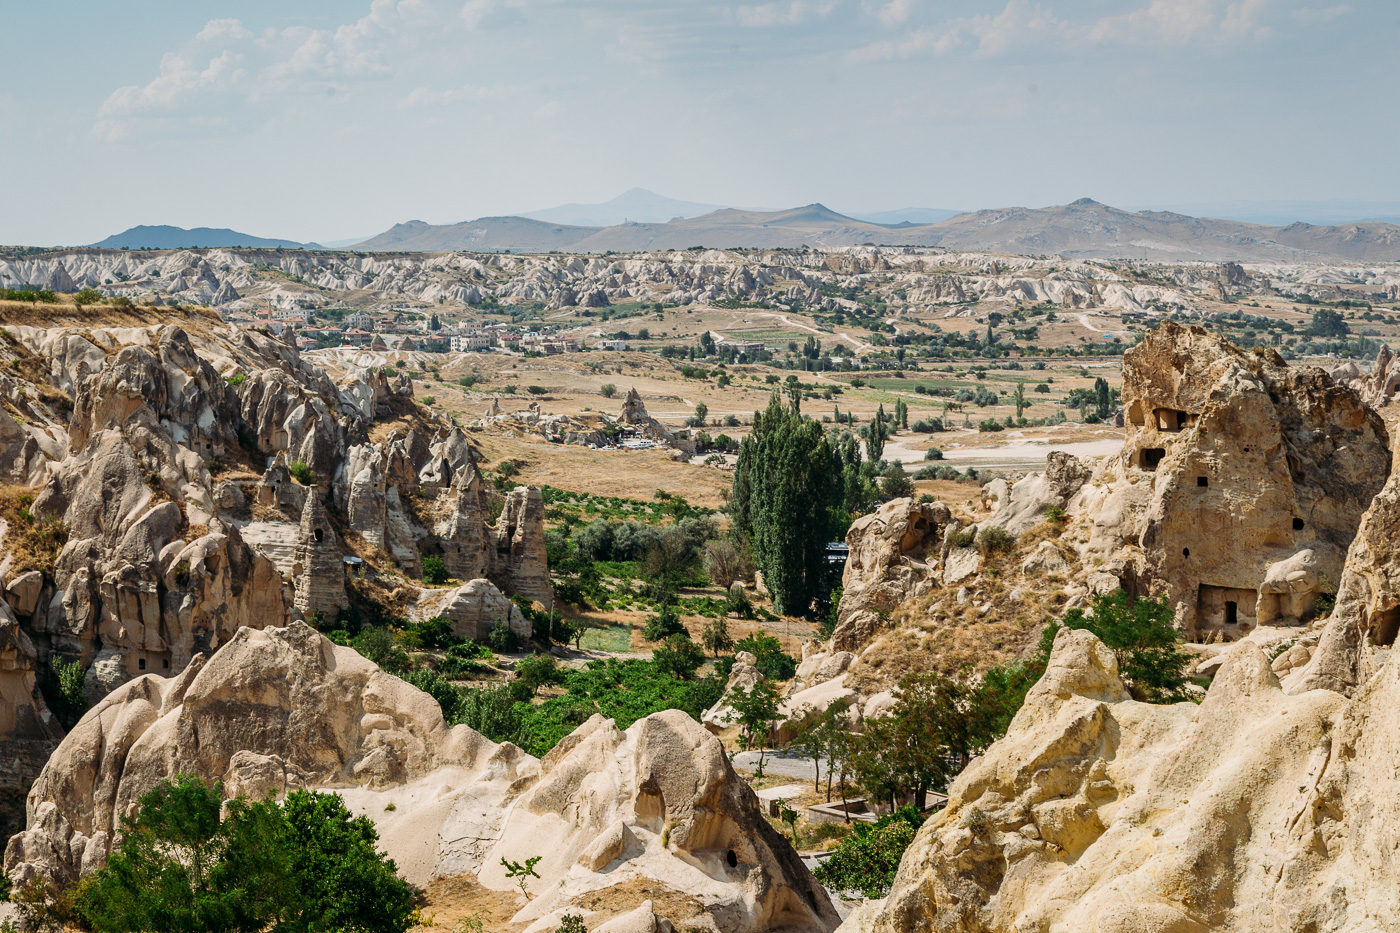 We spent 1 hour in total exploring the religious buildings of the Goreme Open Air Museum in Cappadocia